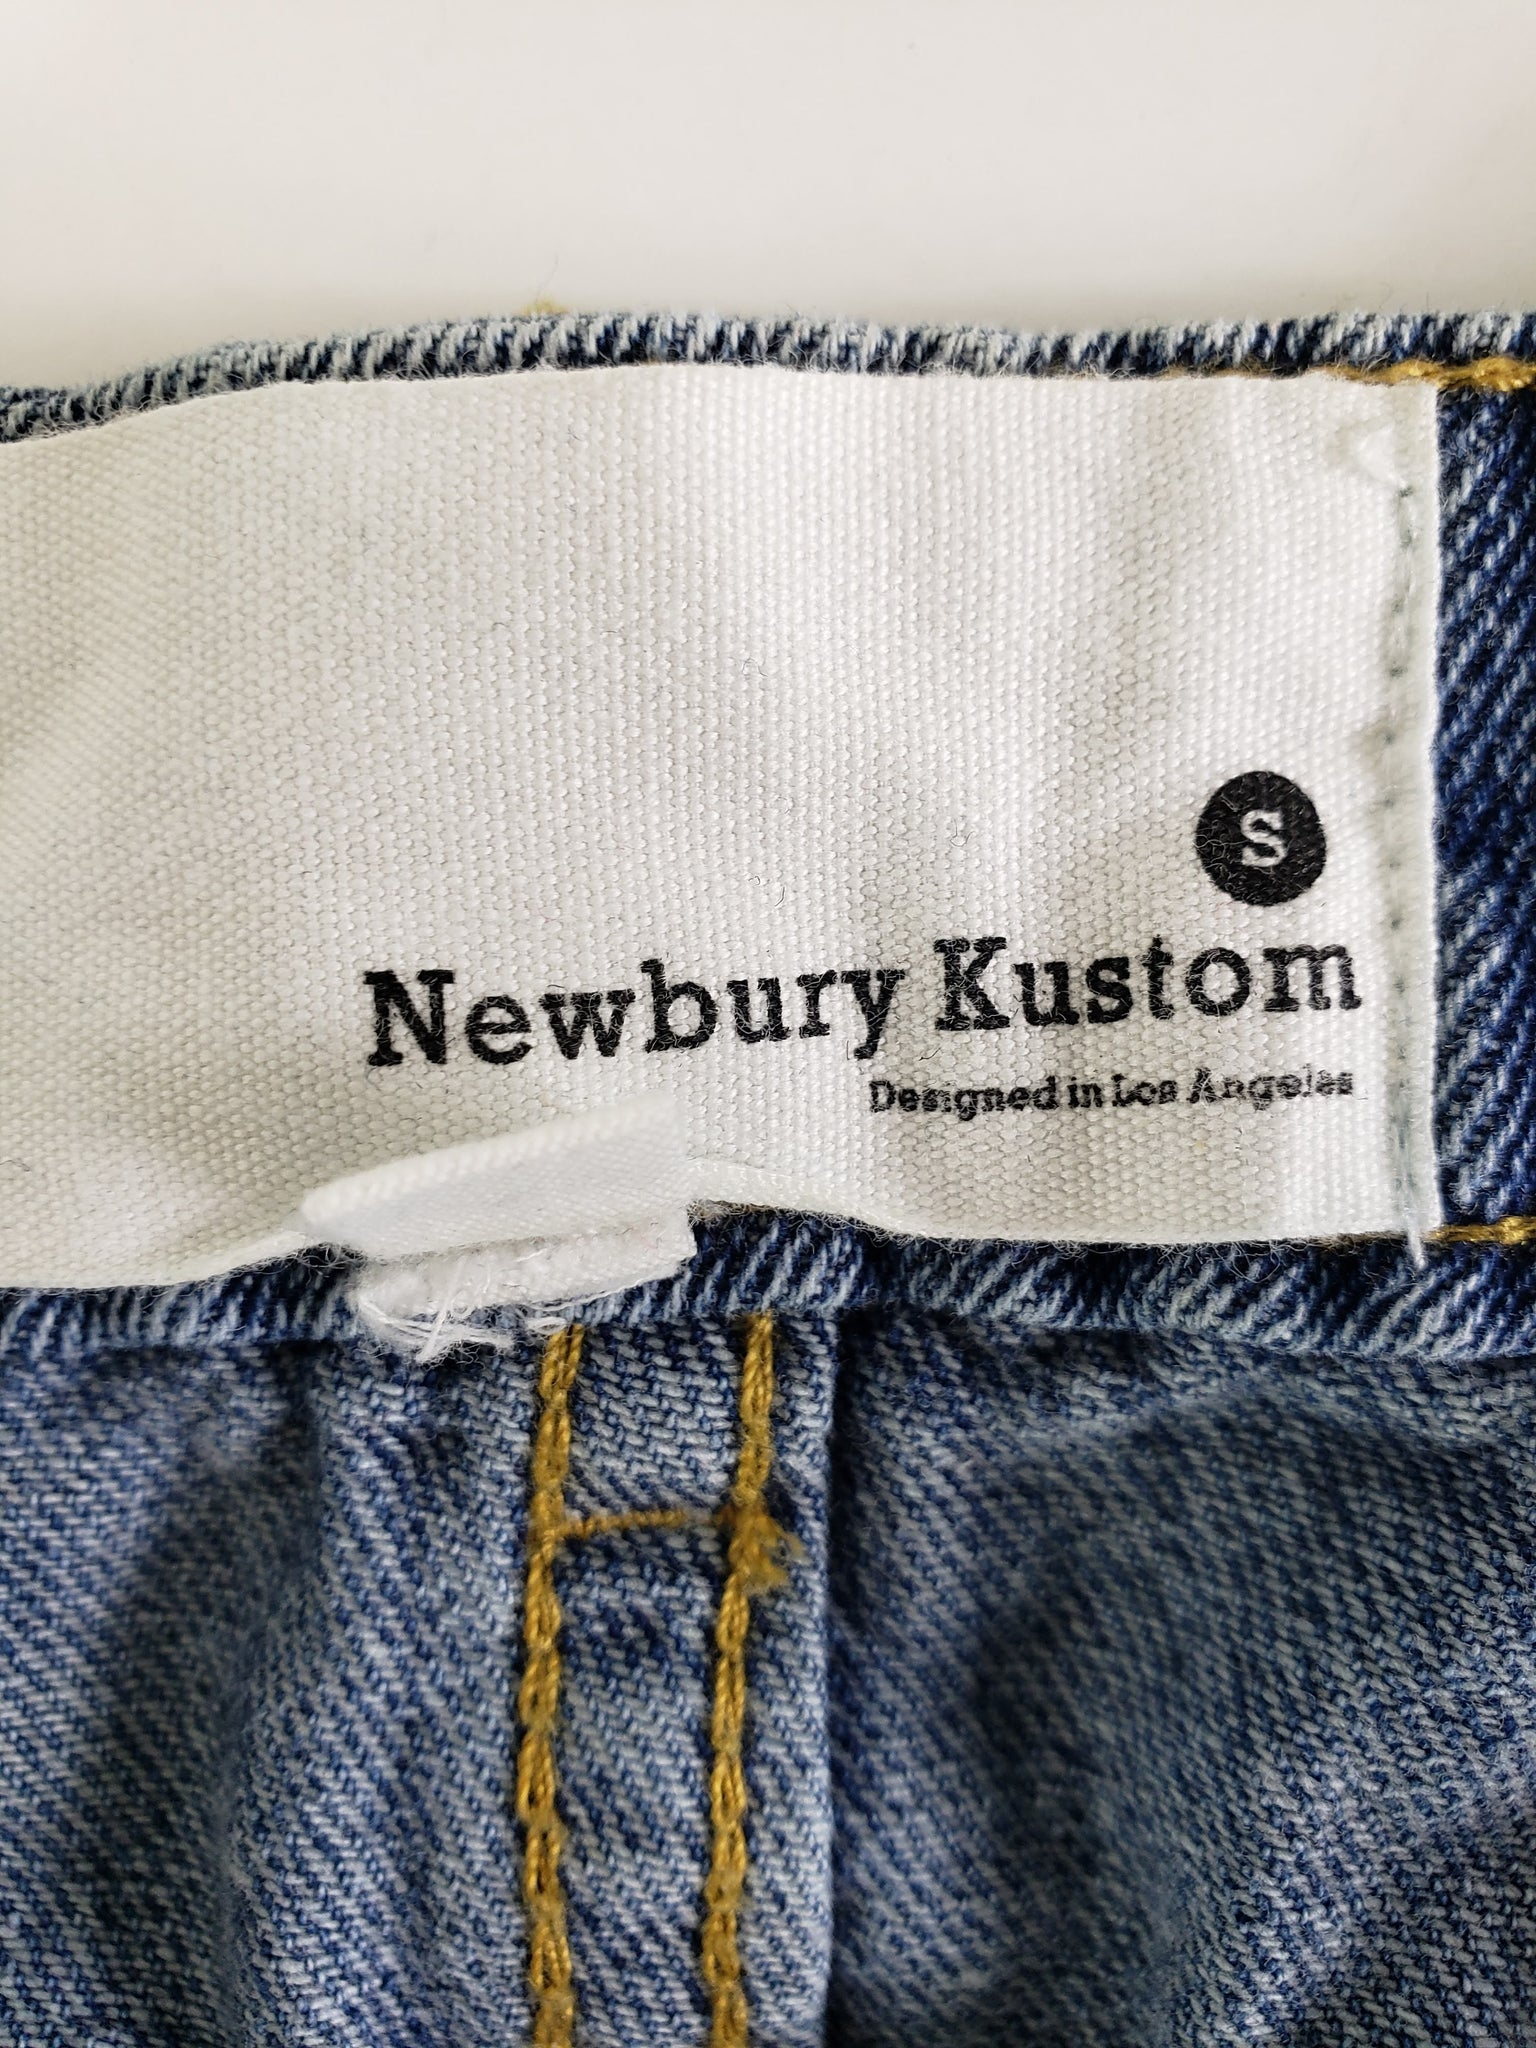 Newbury Kustom Button Front Jean Skirt Size Small